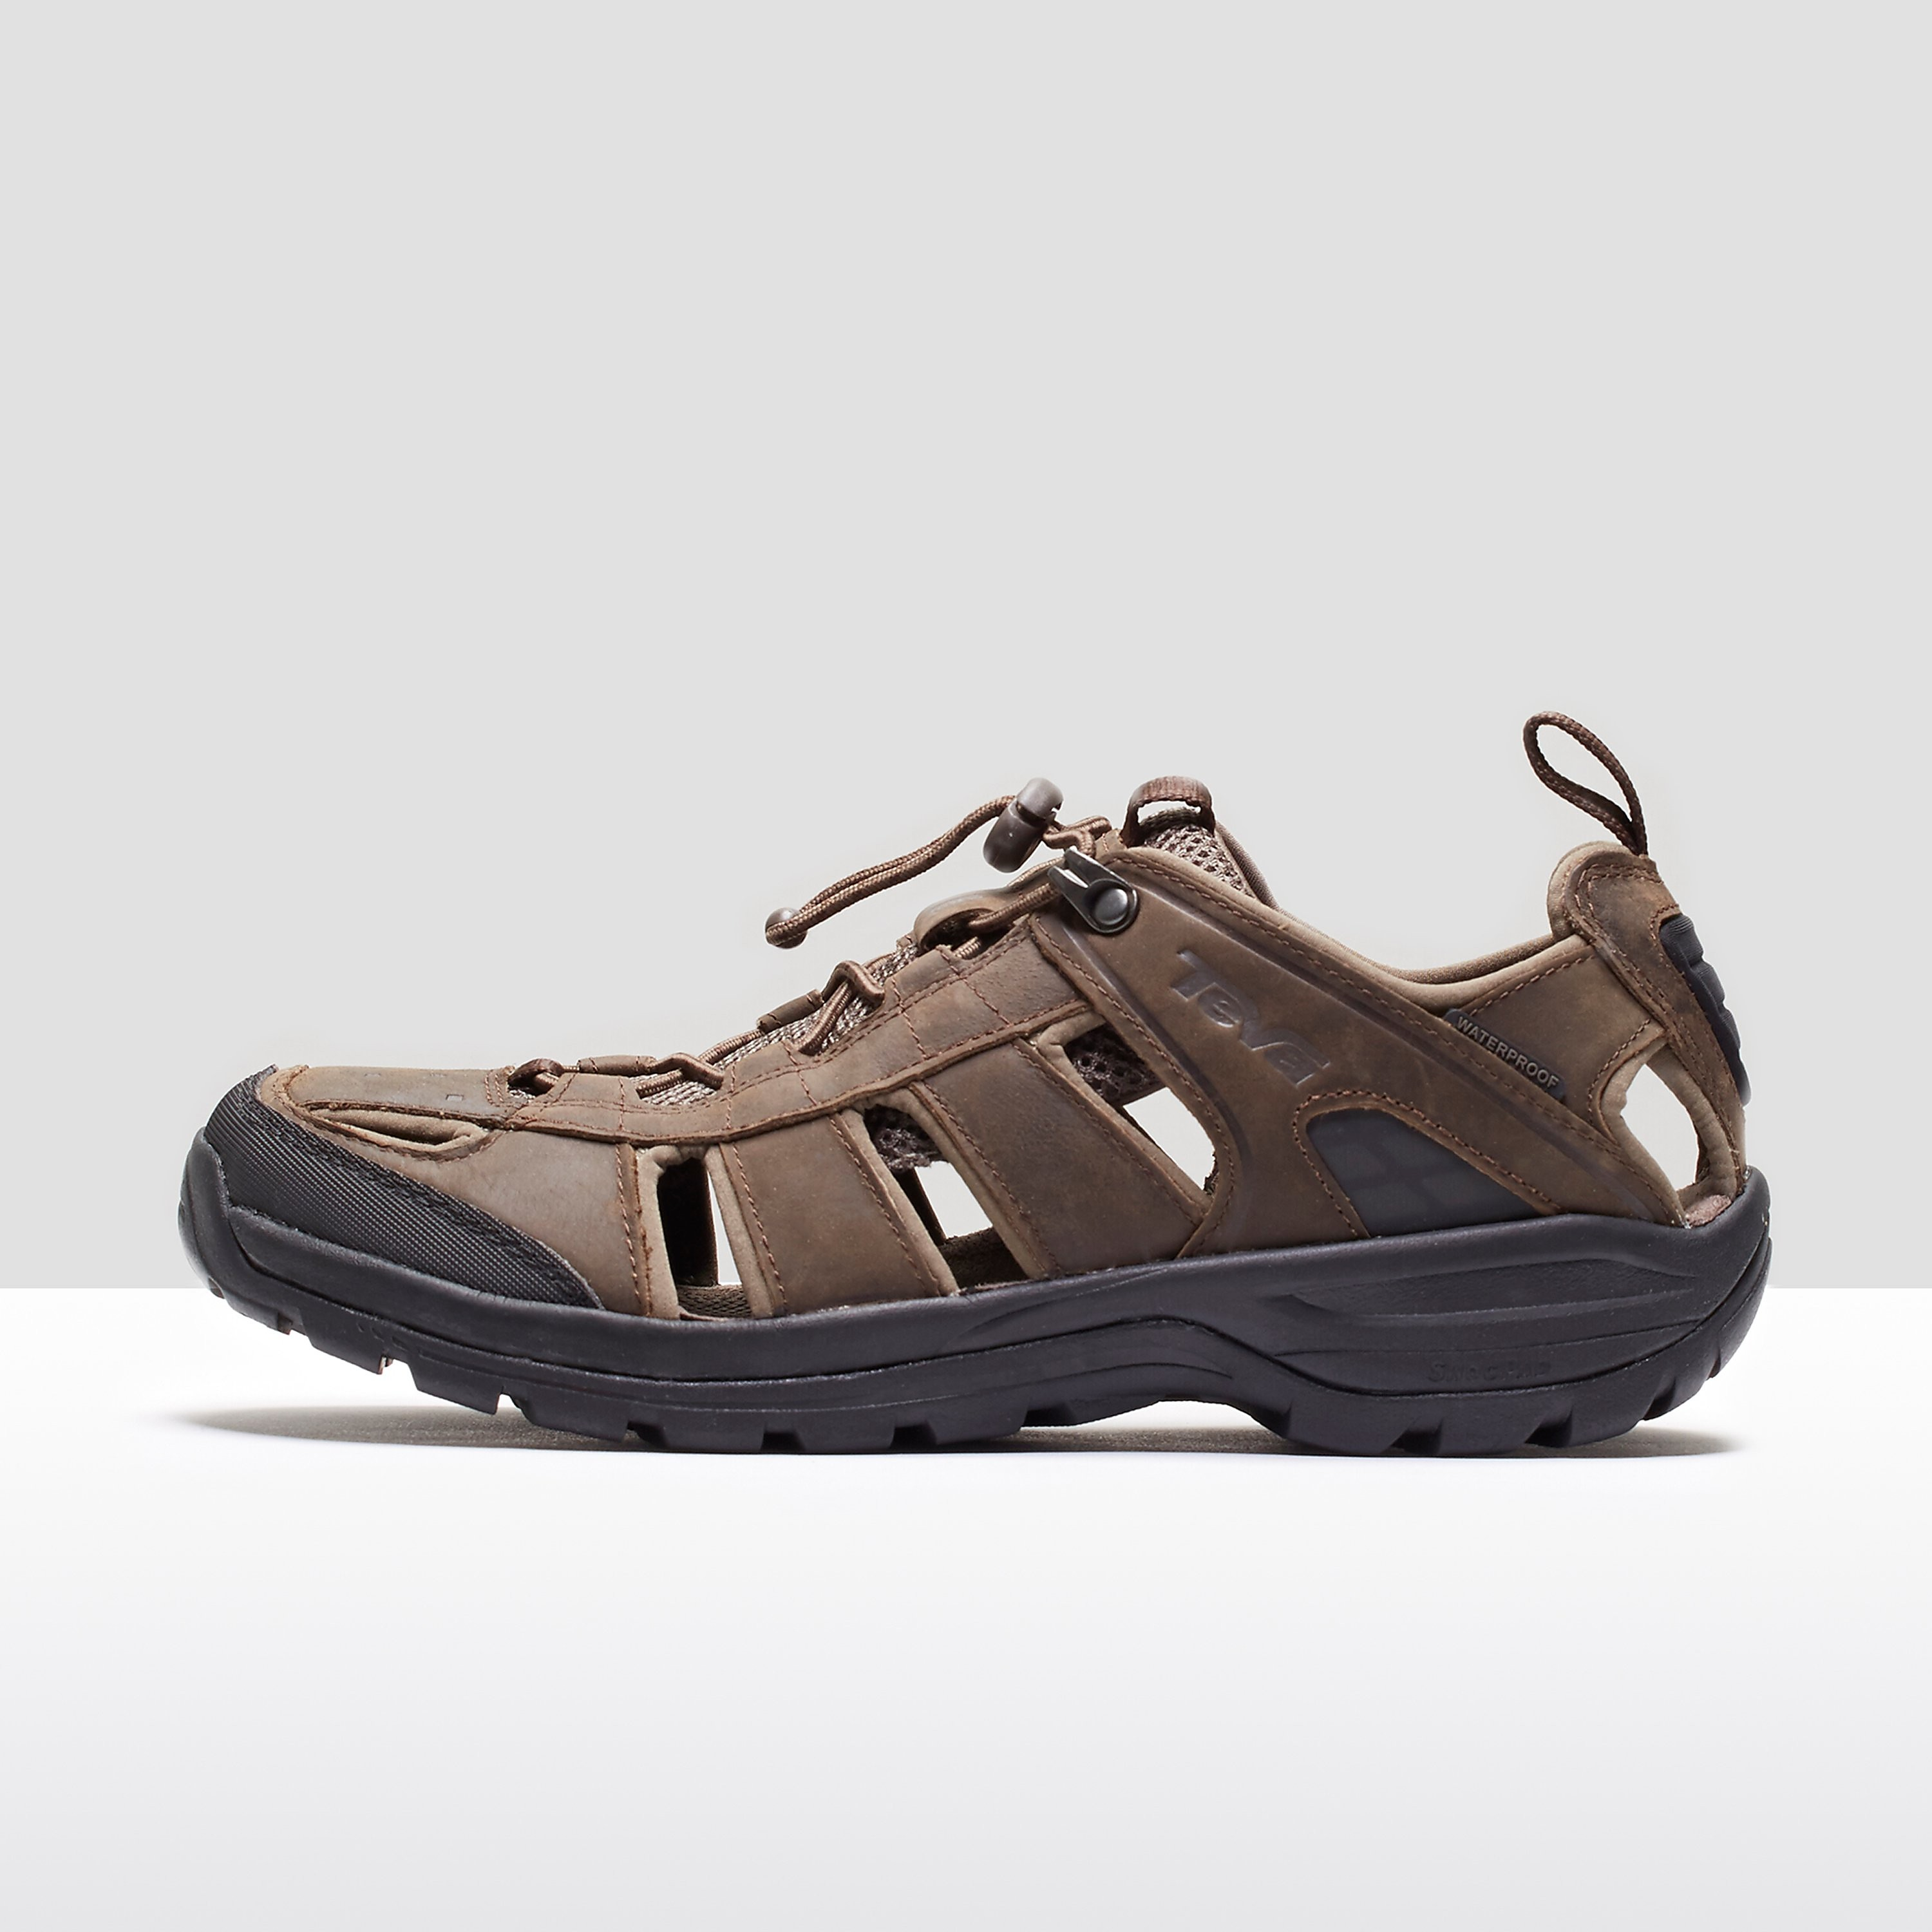 Teva Kimtah Leather Men's Sandal